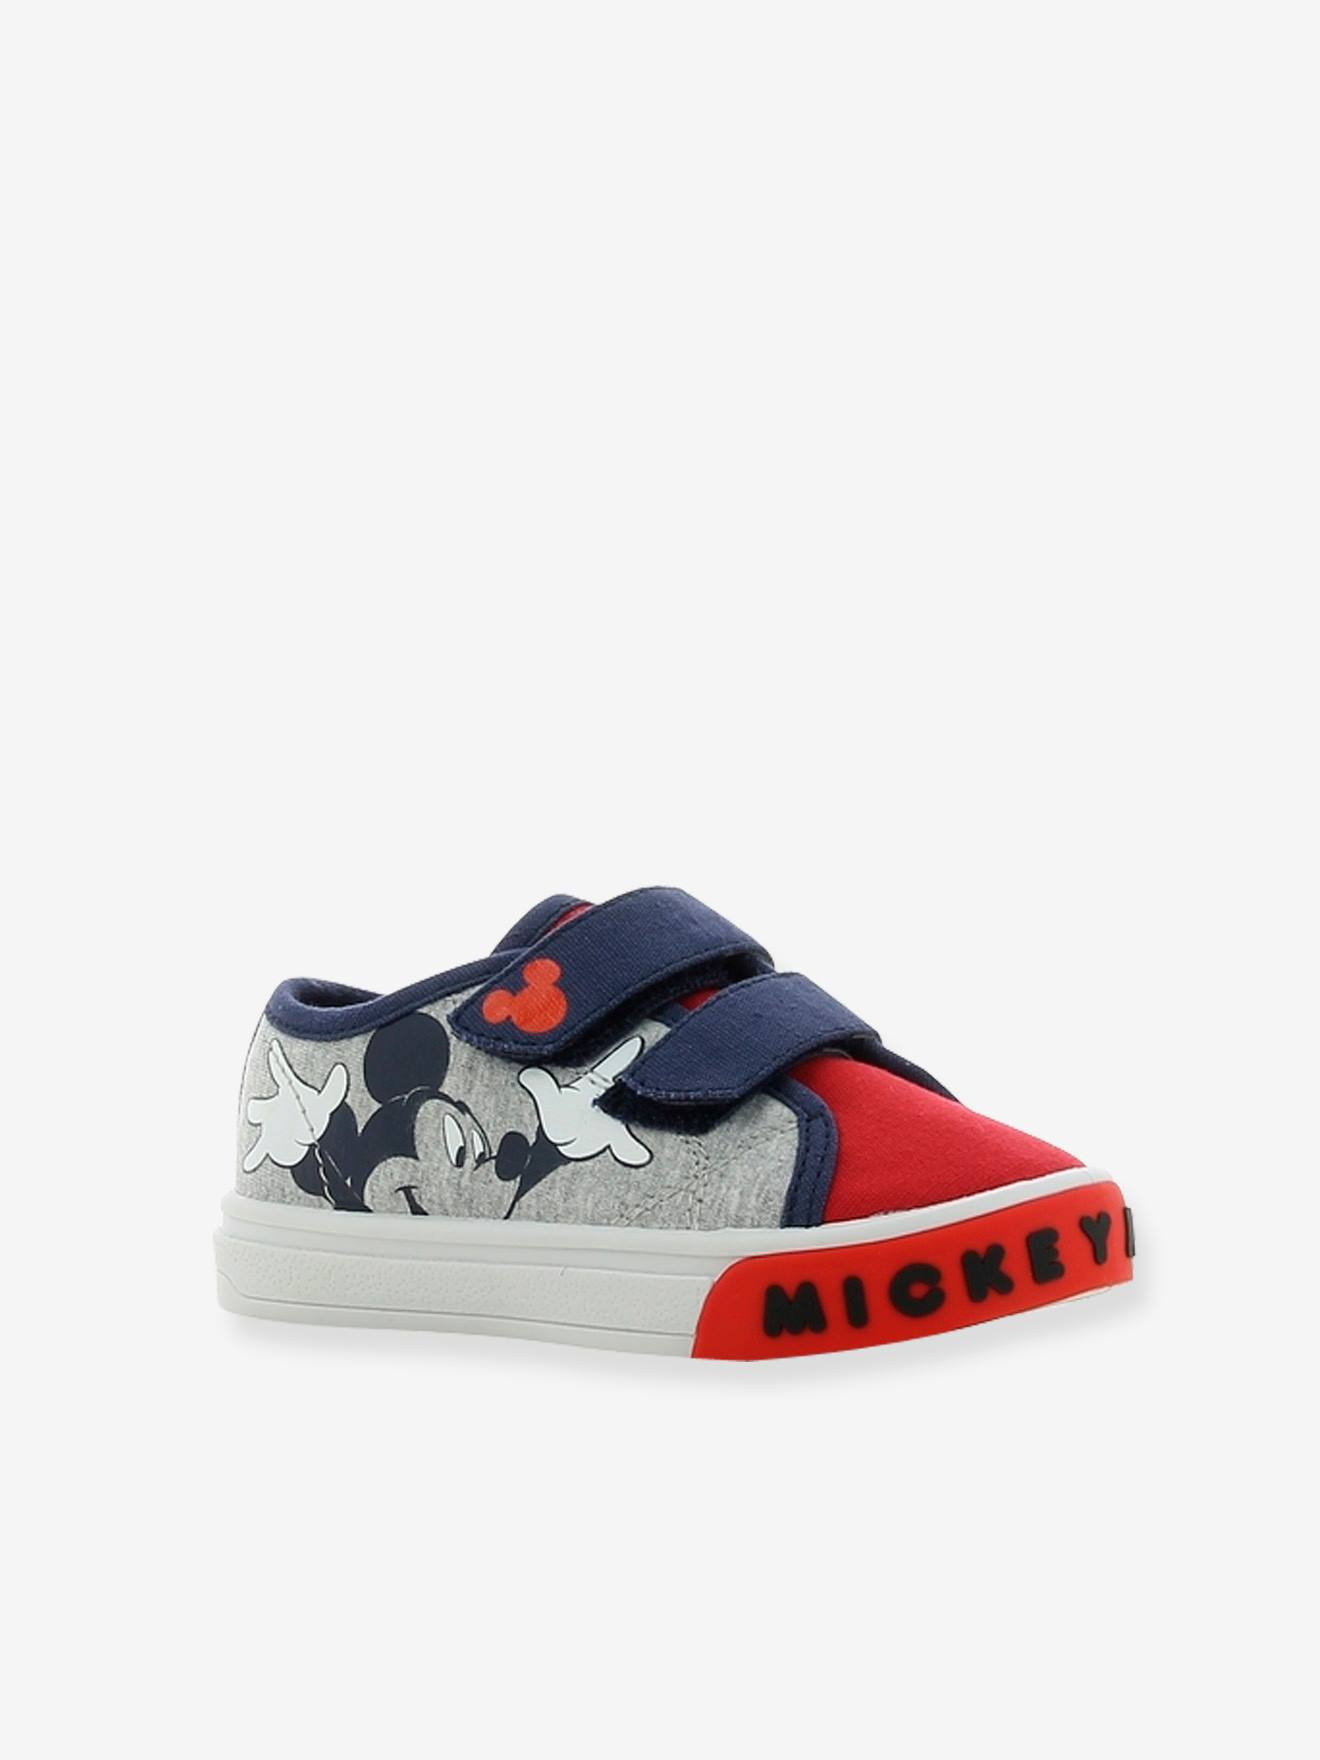 Boys Mickey Disney Trainers Grey Light Solid With Design Shoes